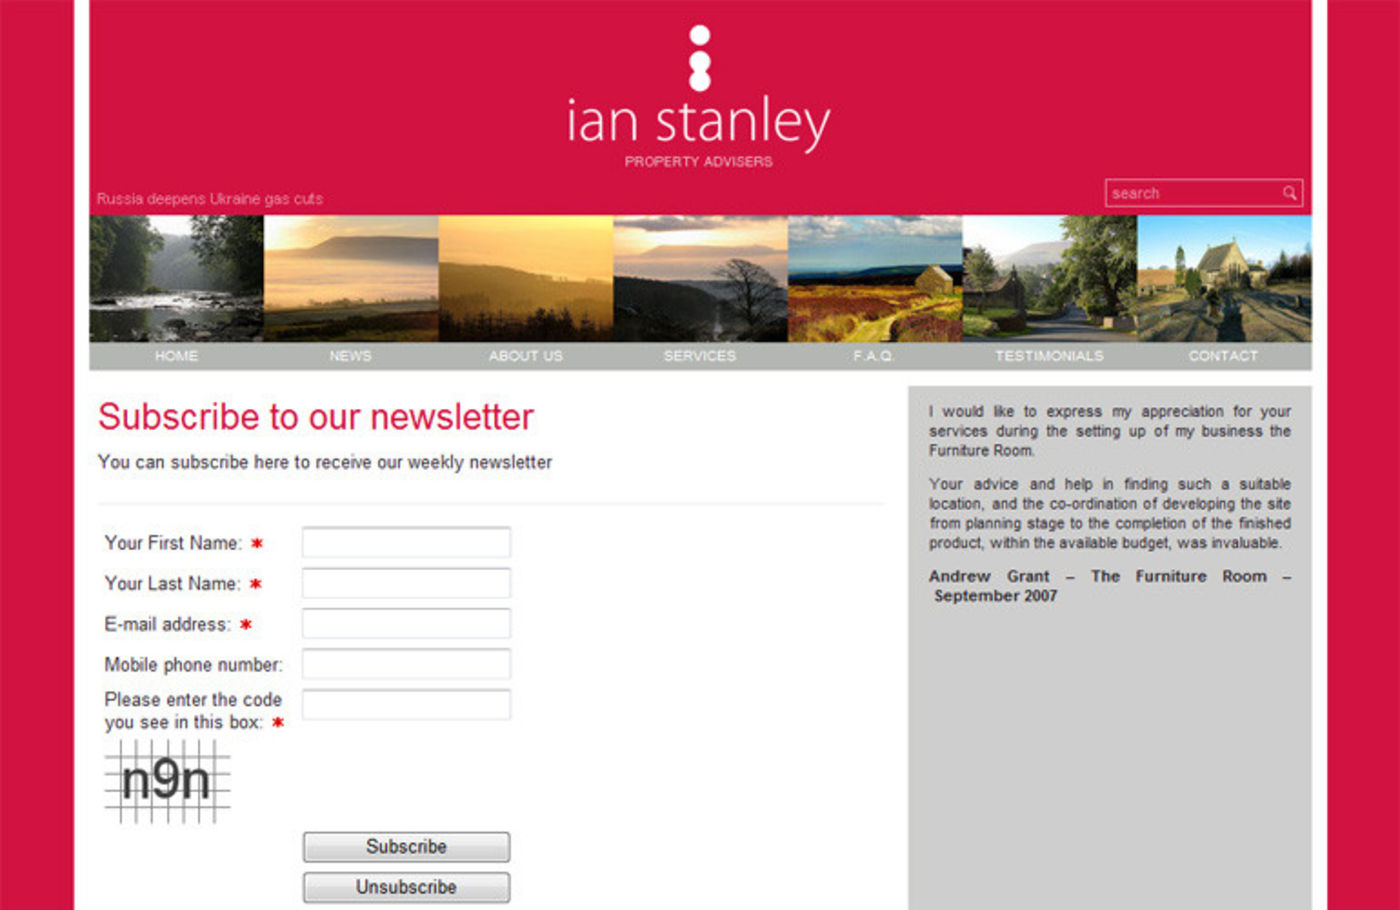 Ian Stanley Property Advisers Form:- Subscribe to our newsletter